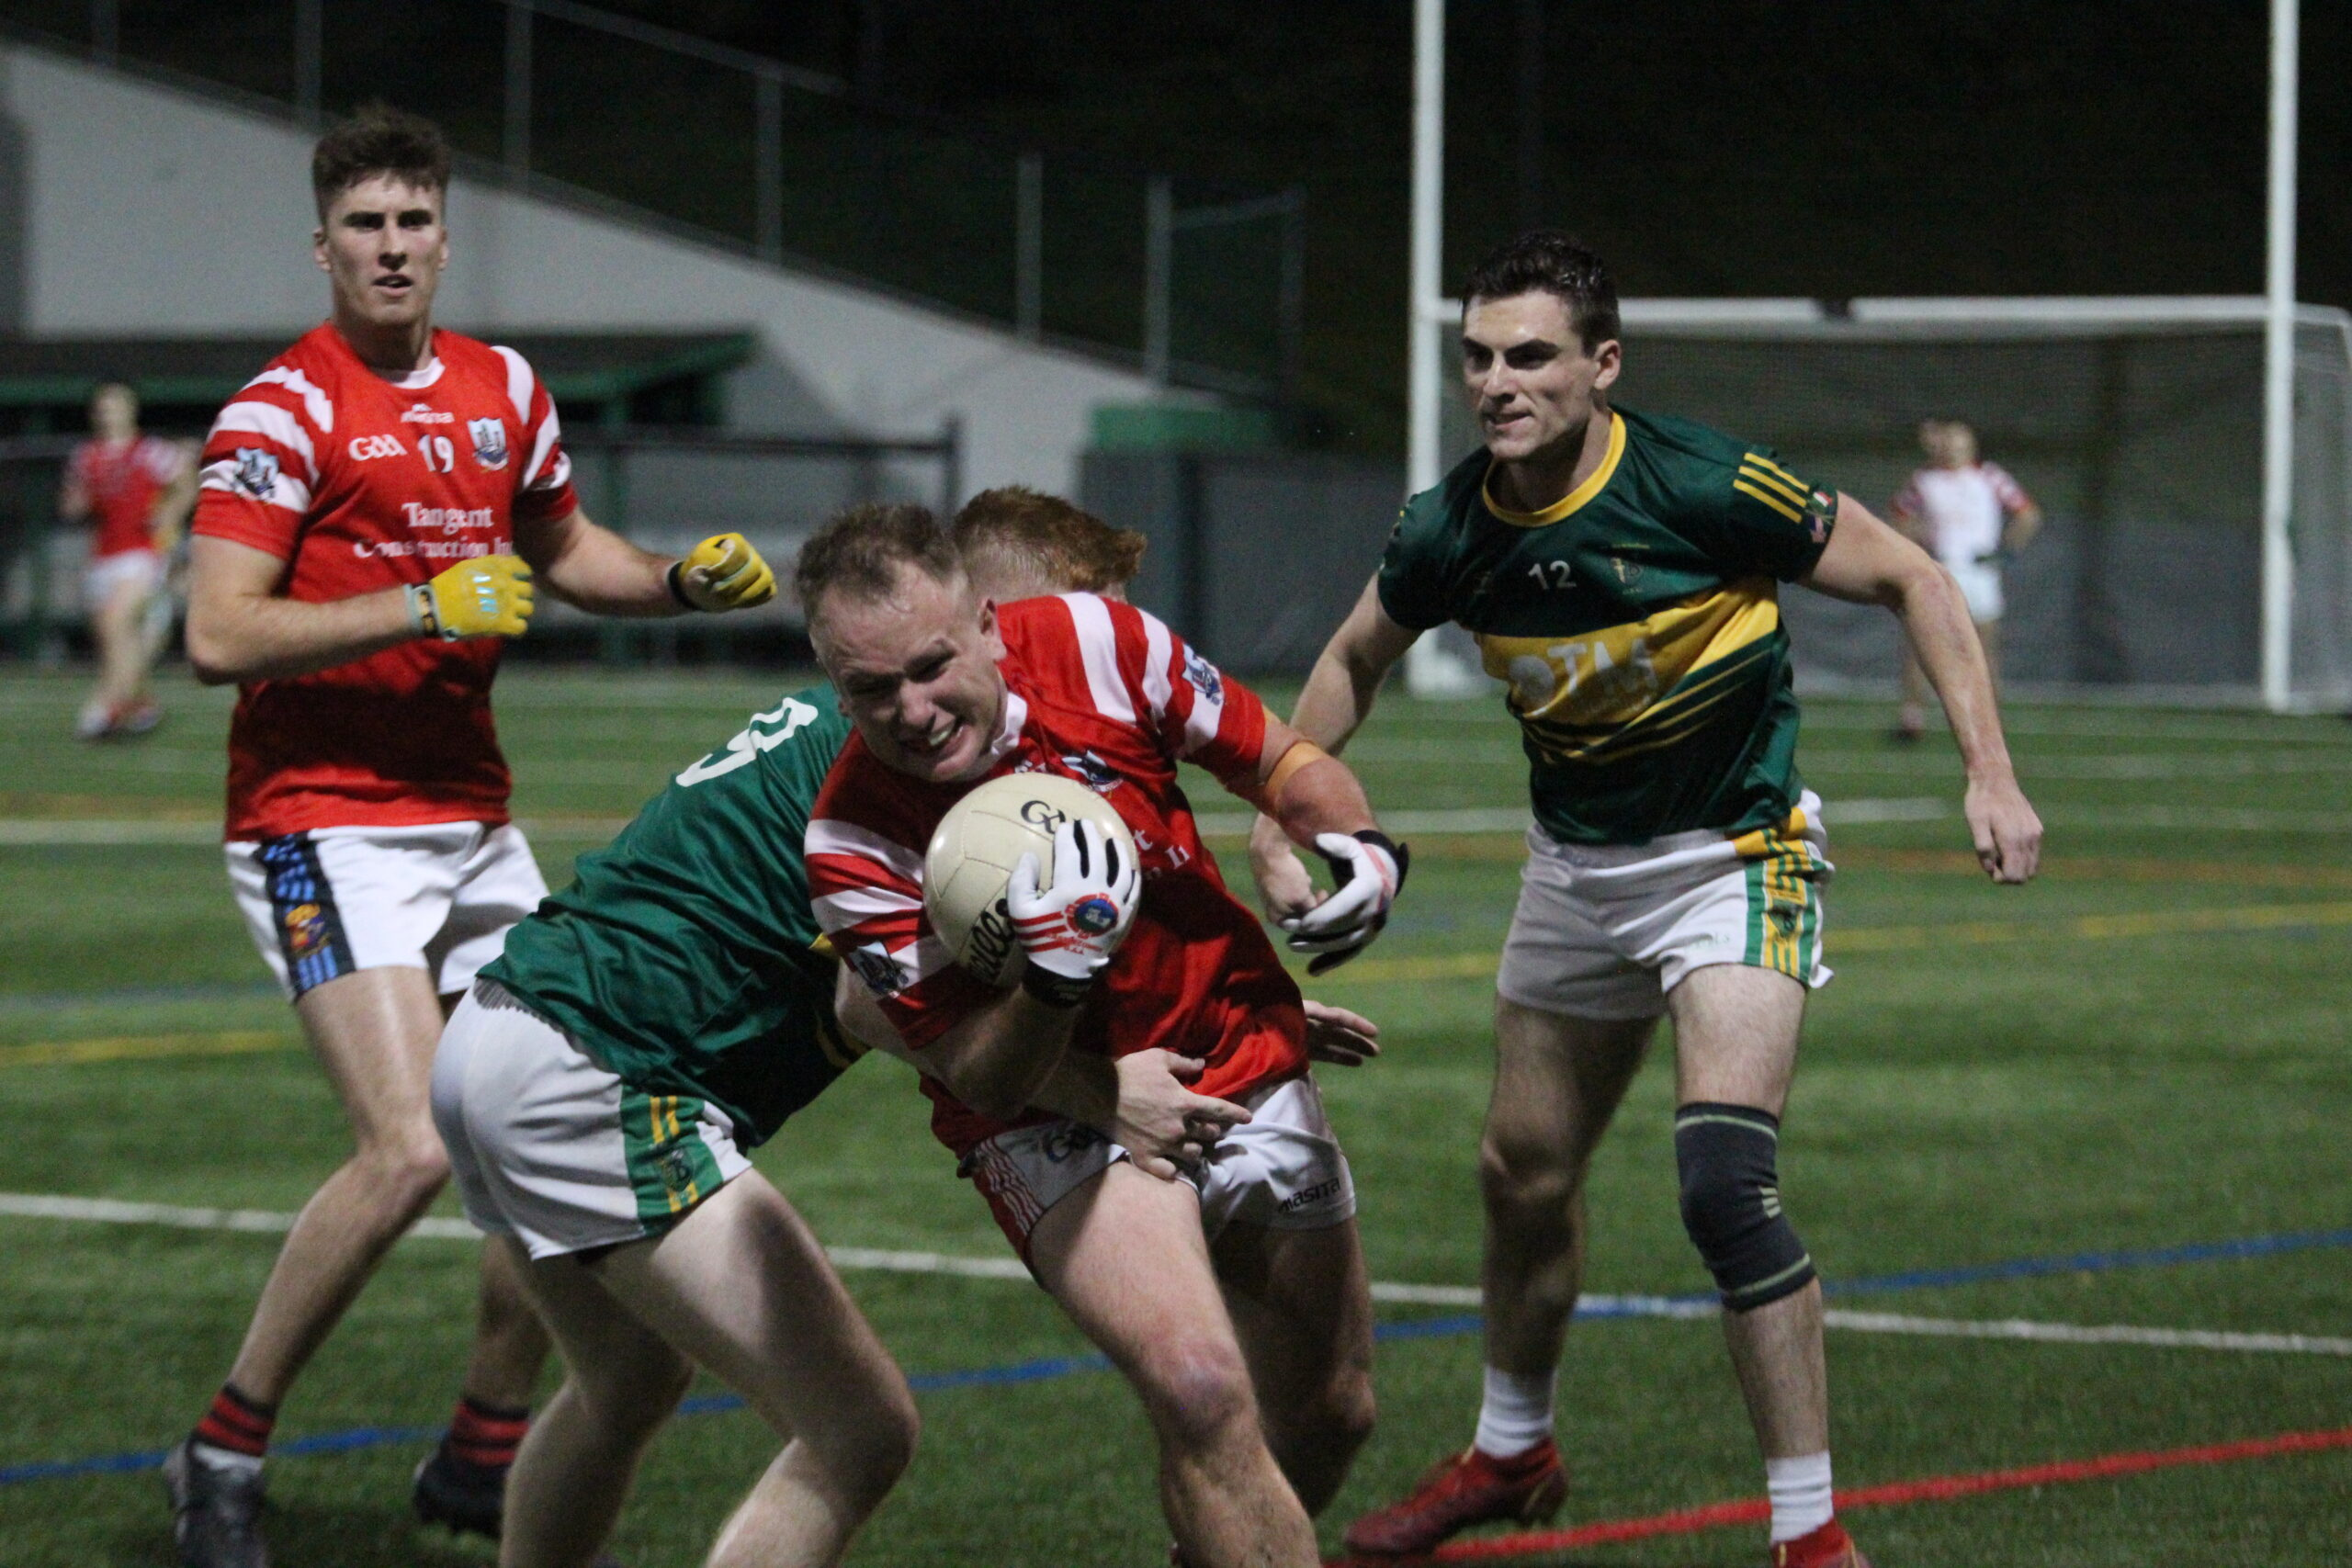 Cork's Niall Judge on the ball (Photo by Sharon Redican)